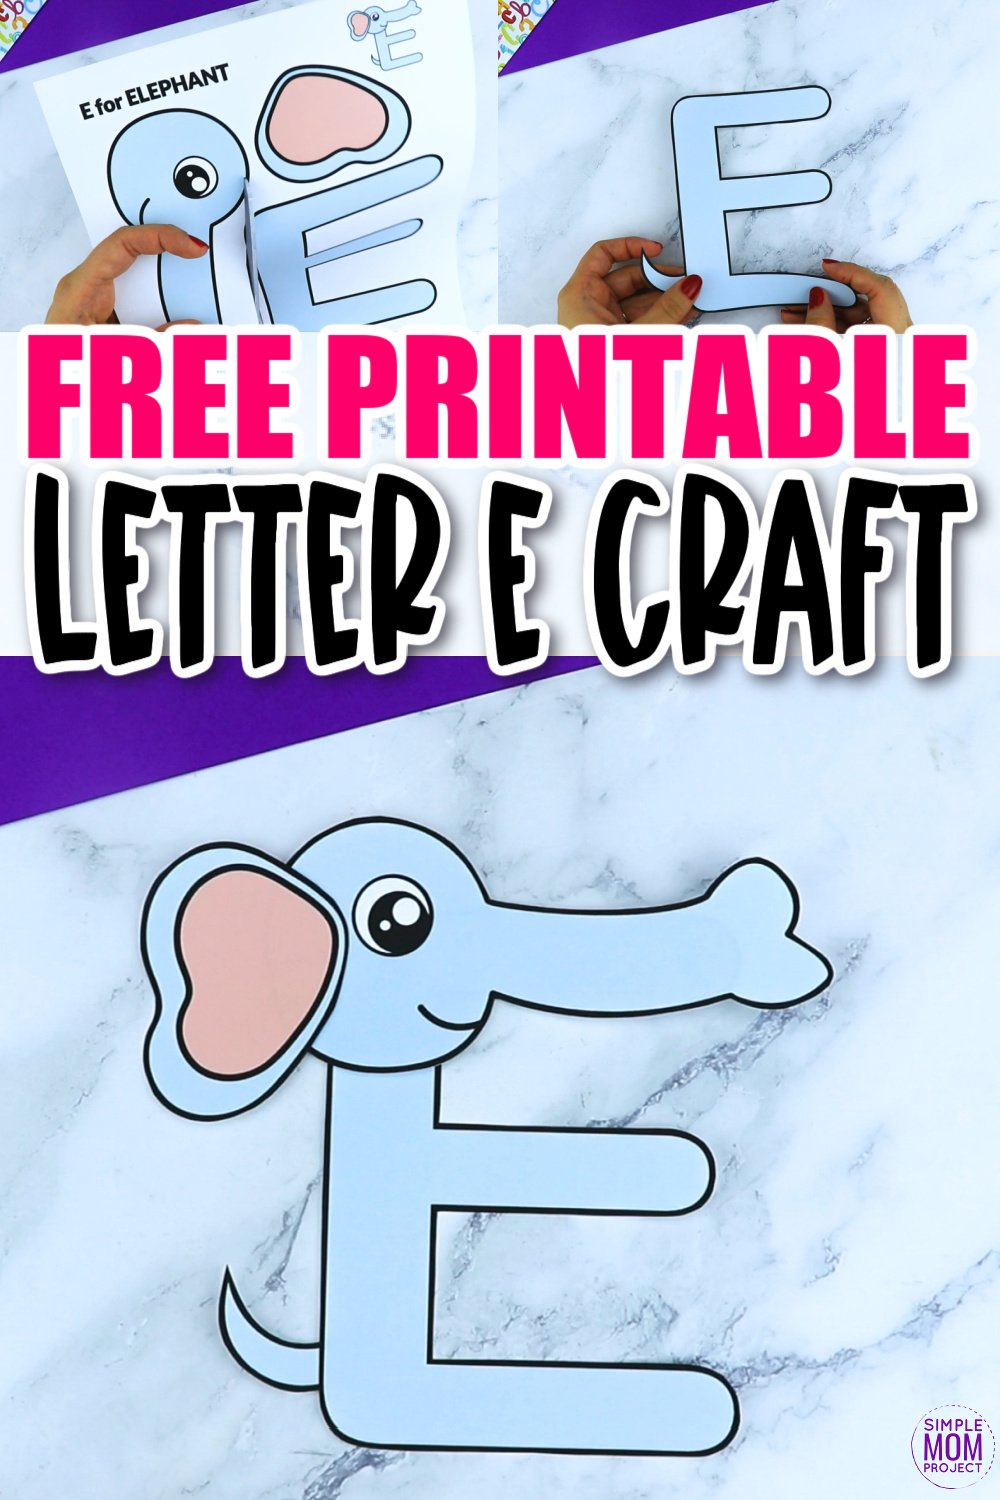 E is for Elephant Printable Craft Elephant Letter E Craft for Kids, preschoolers, toddlers and kindergartners